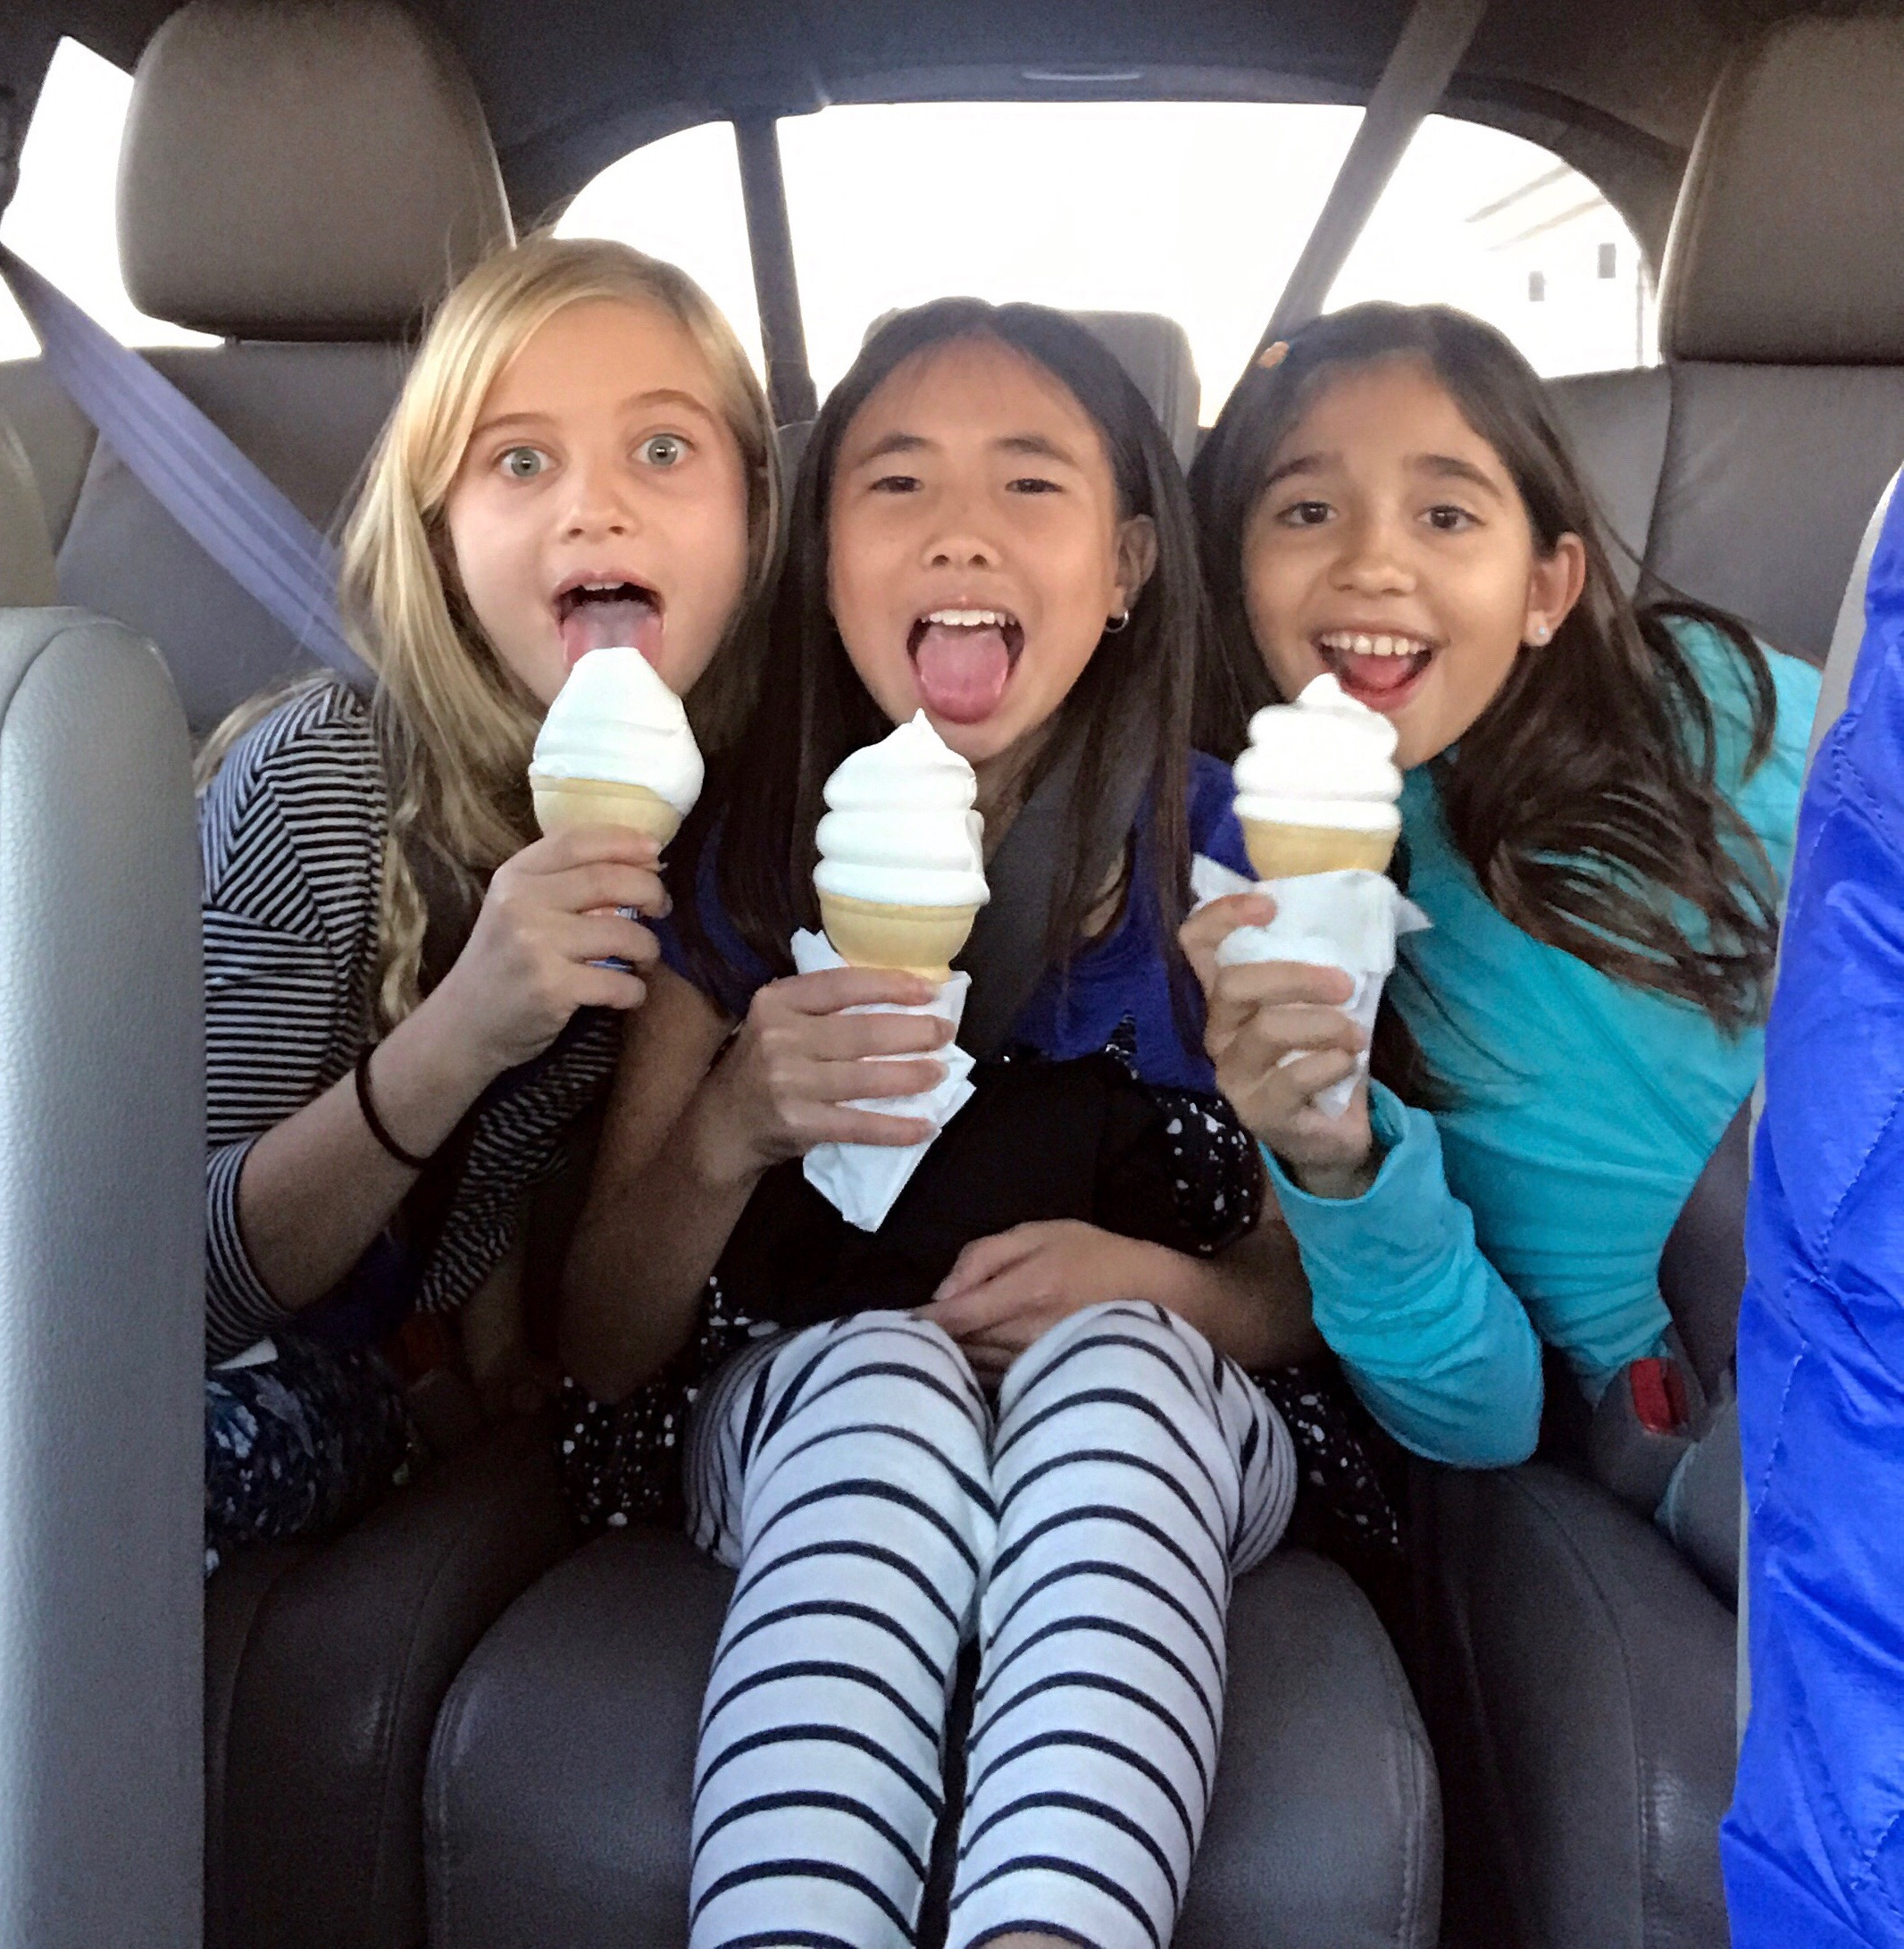 The triple play-date with Addie's friends, Maia (on the left) and Nina (on the right) 🍦🍦🍦